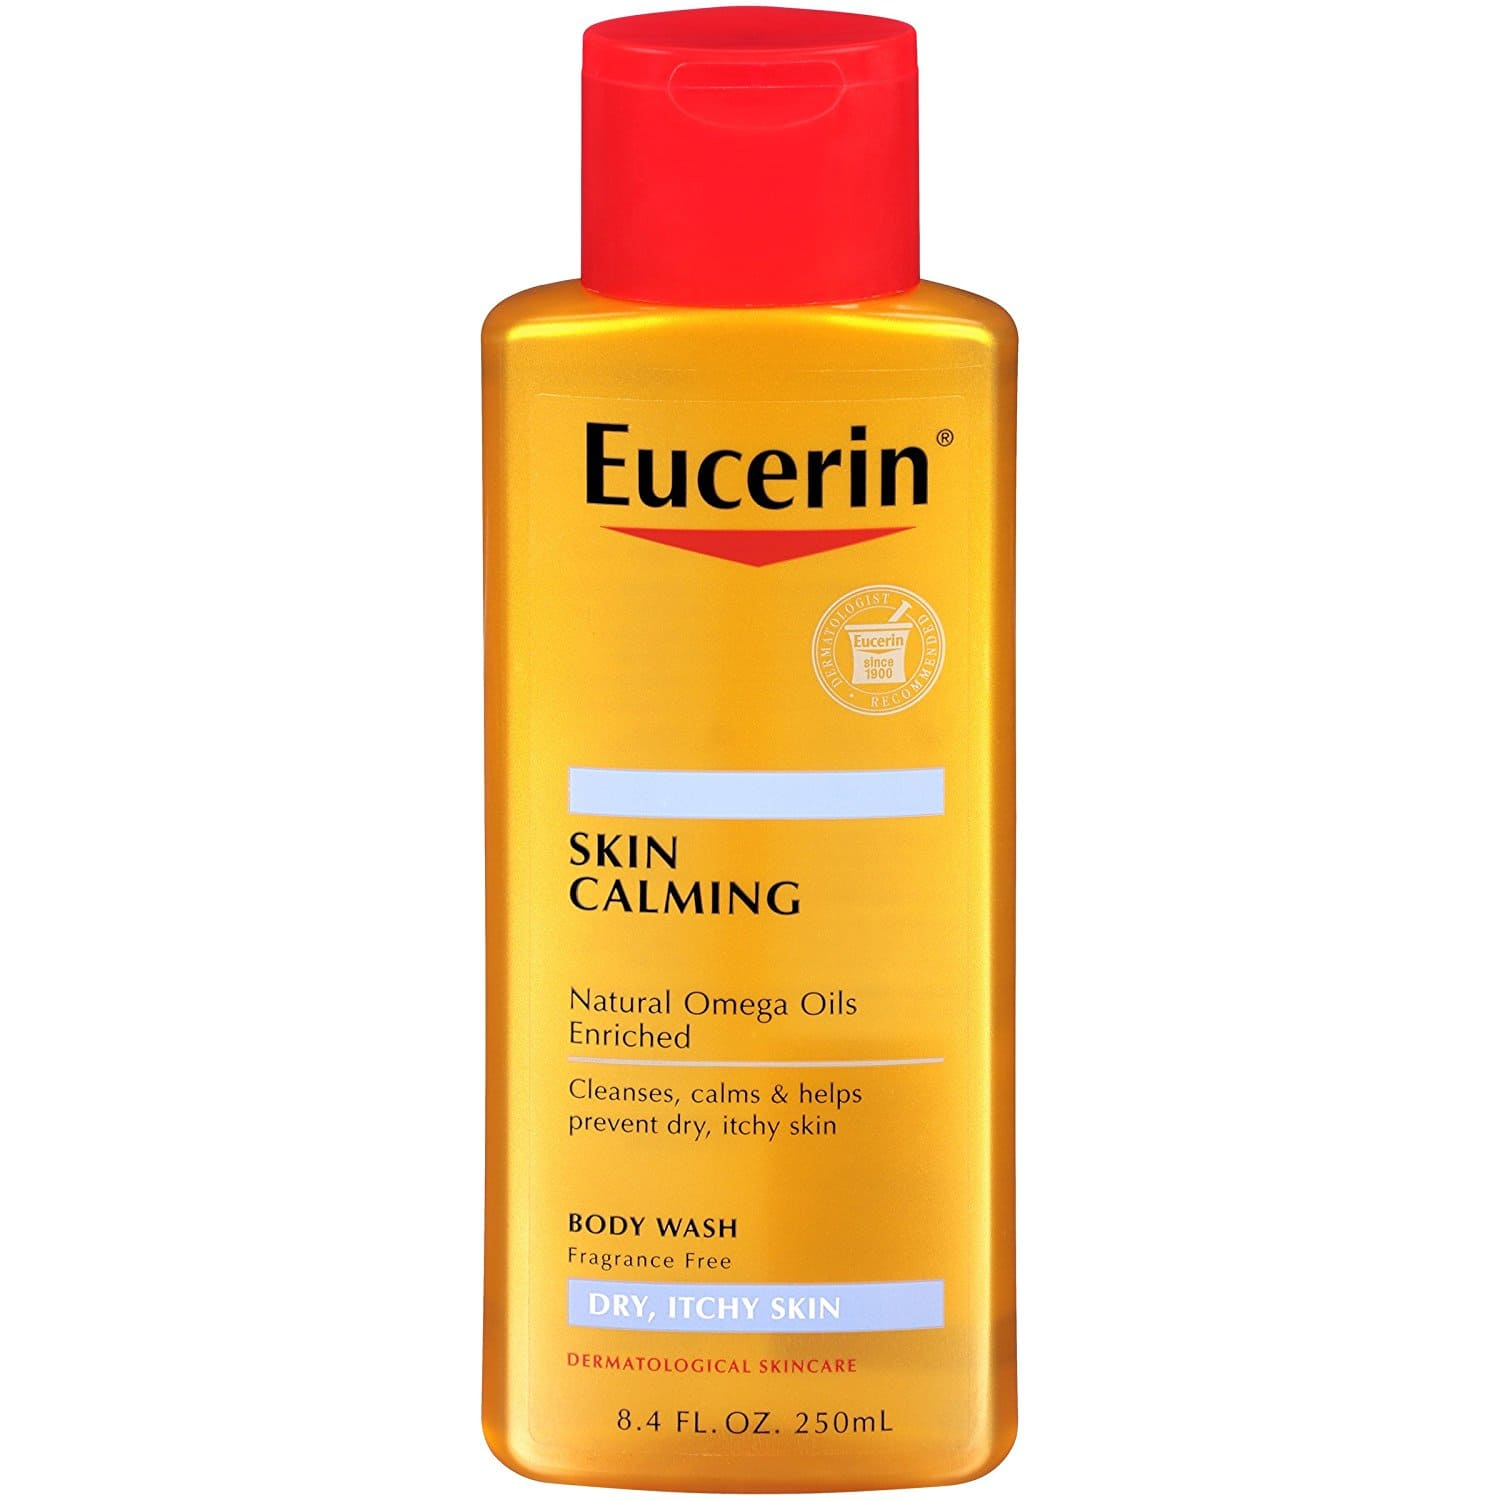 Amazon S&S: Eucerin Skin Calming Dry Skin Body Wash Oil Fragrance Free, 8.4 Ounce (Pack of 3) $11.45